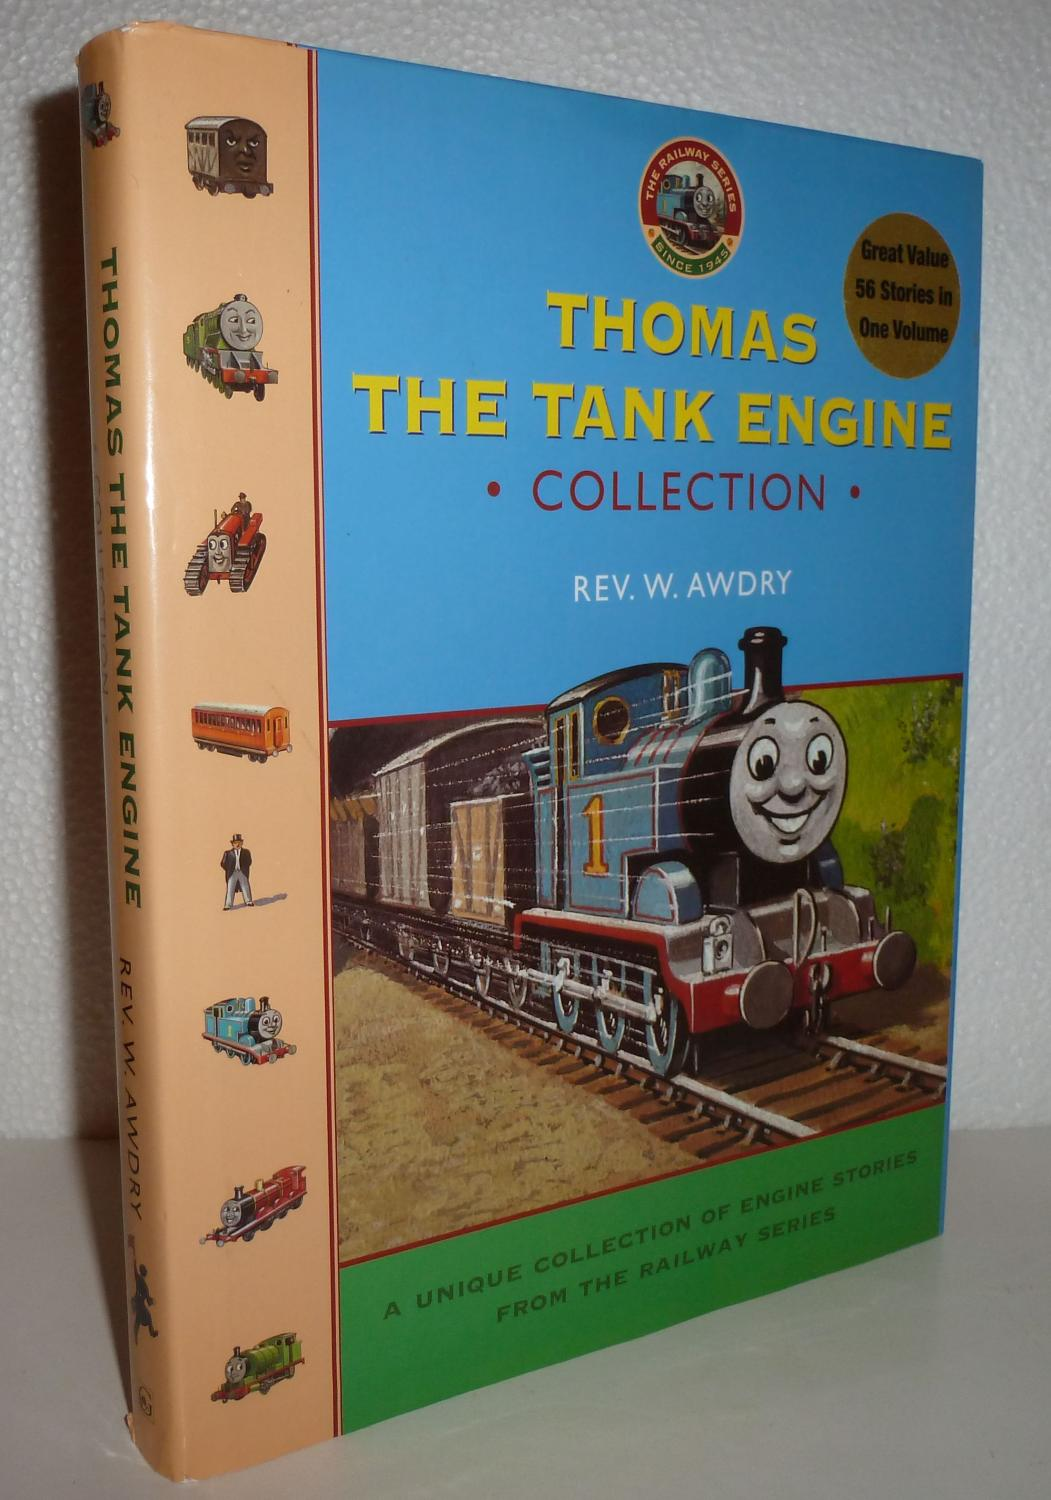 Thomas the Tank Engine Collection: A Unique